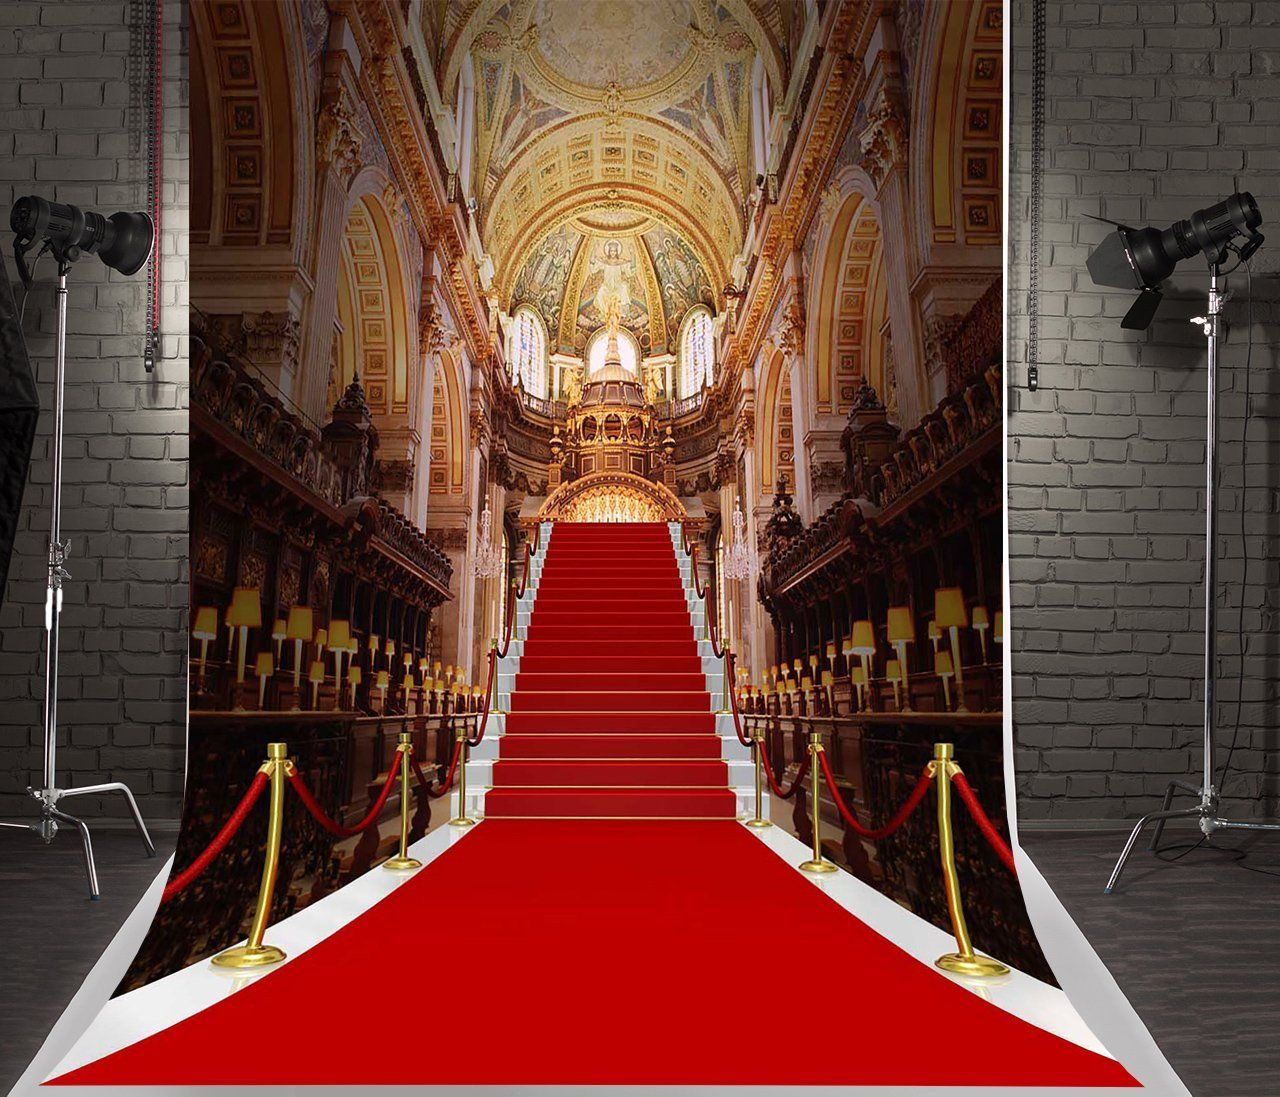 Amazon.com : Kate 5x7ft Red Carpet Photography Backdrops